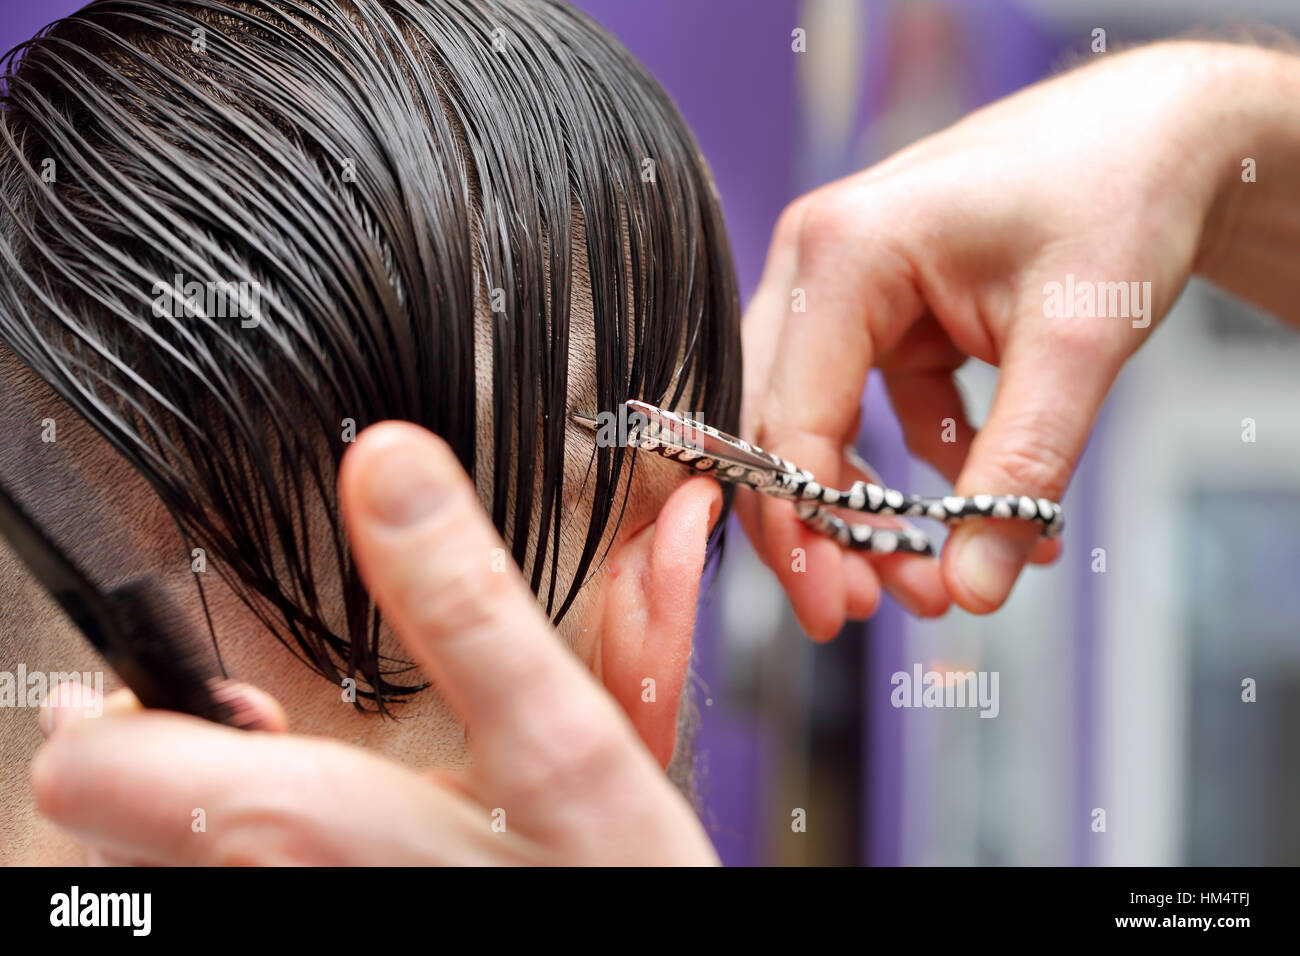 Hairdresser trimming hair with scissors - Stock Image